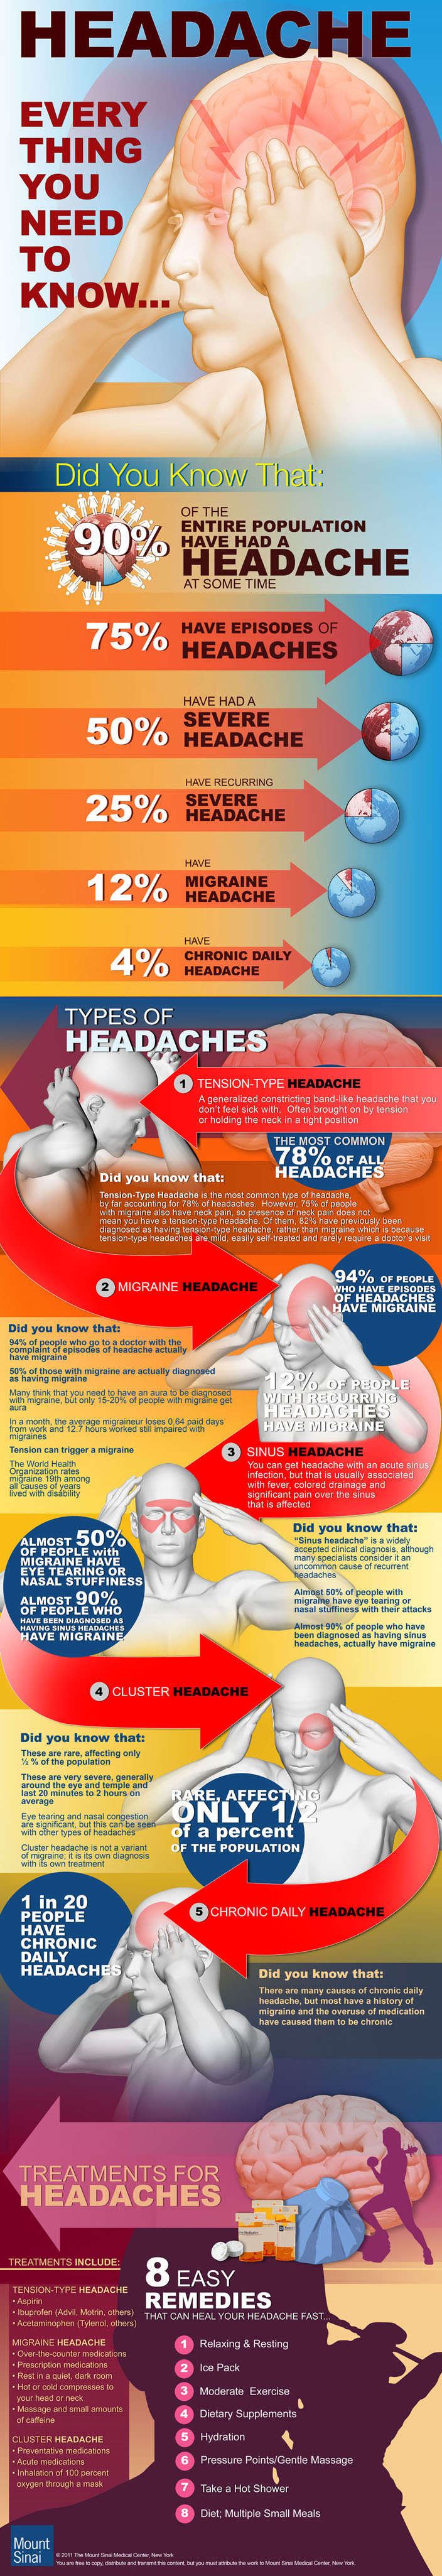 Headache: Everything you Need to Know - #infographic